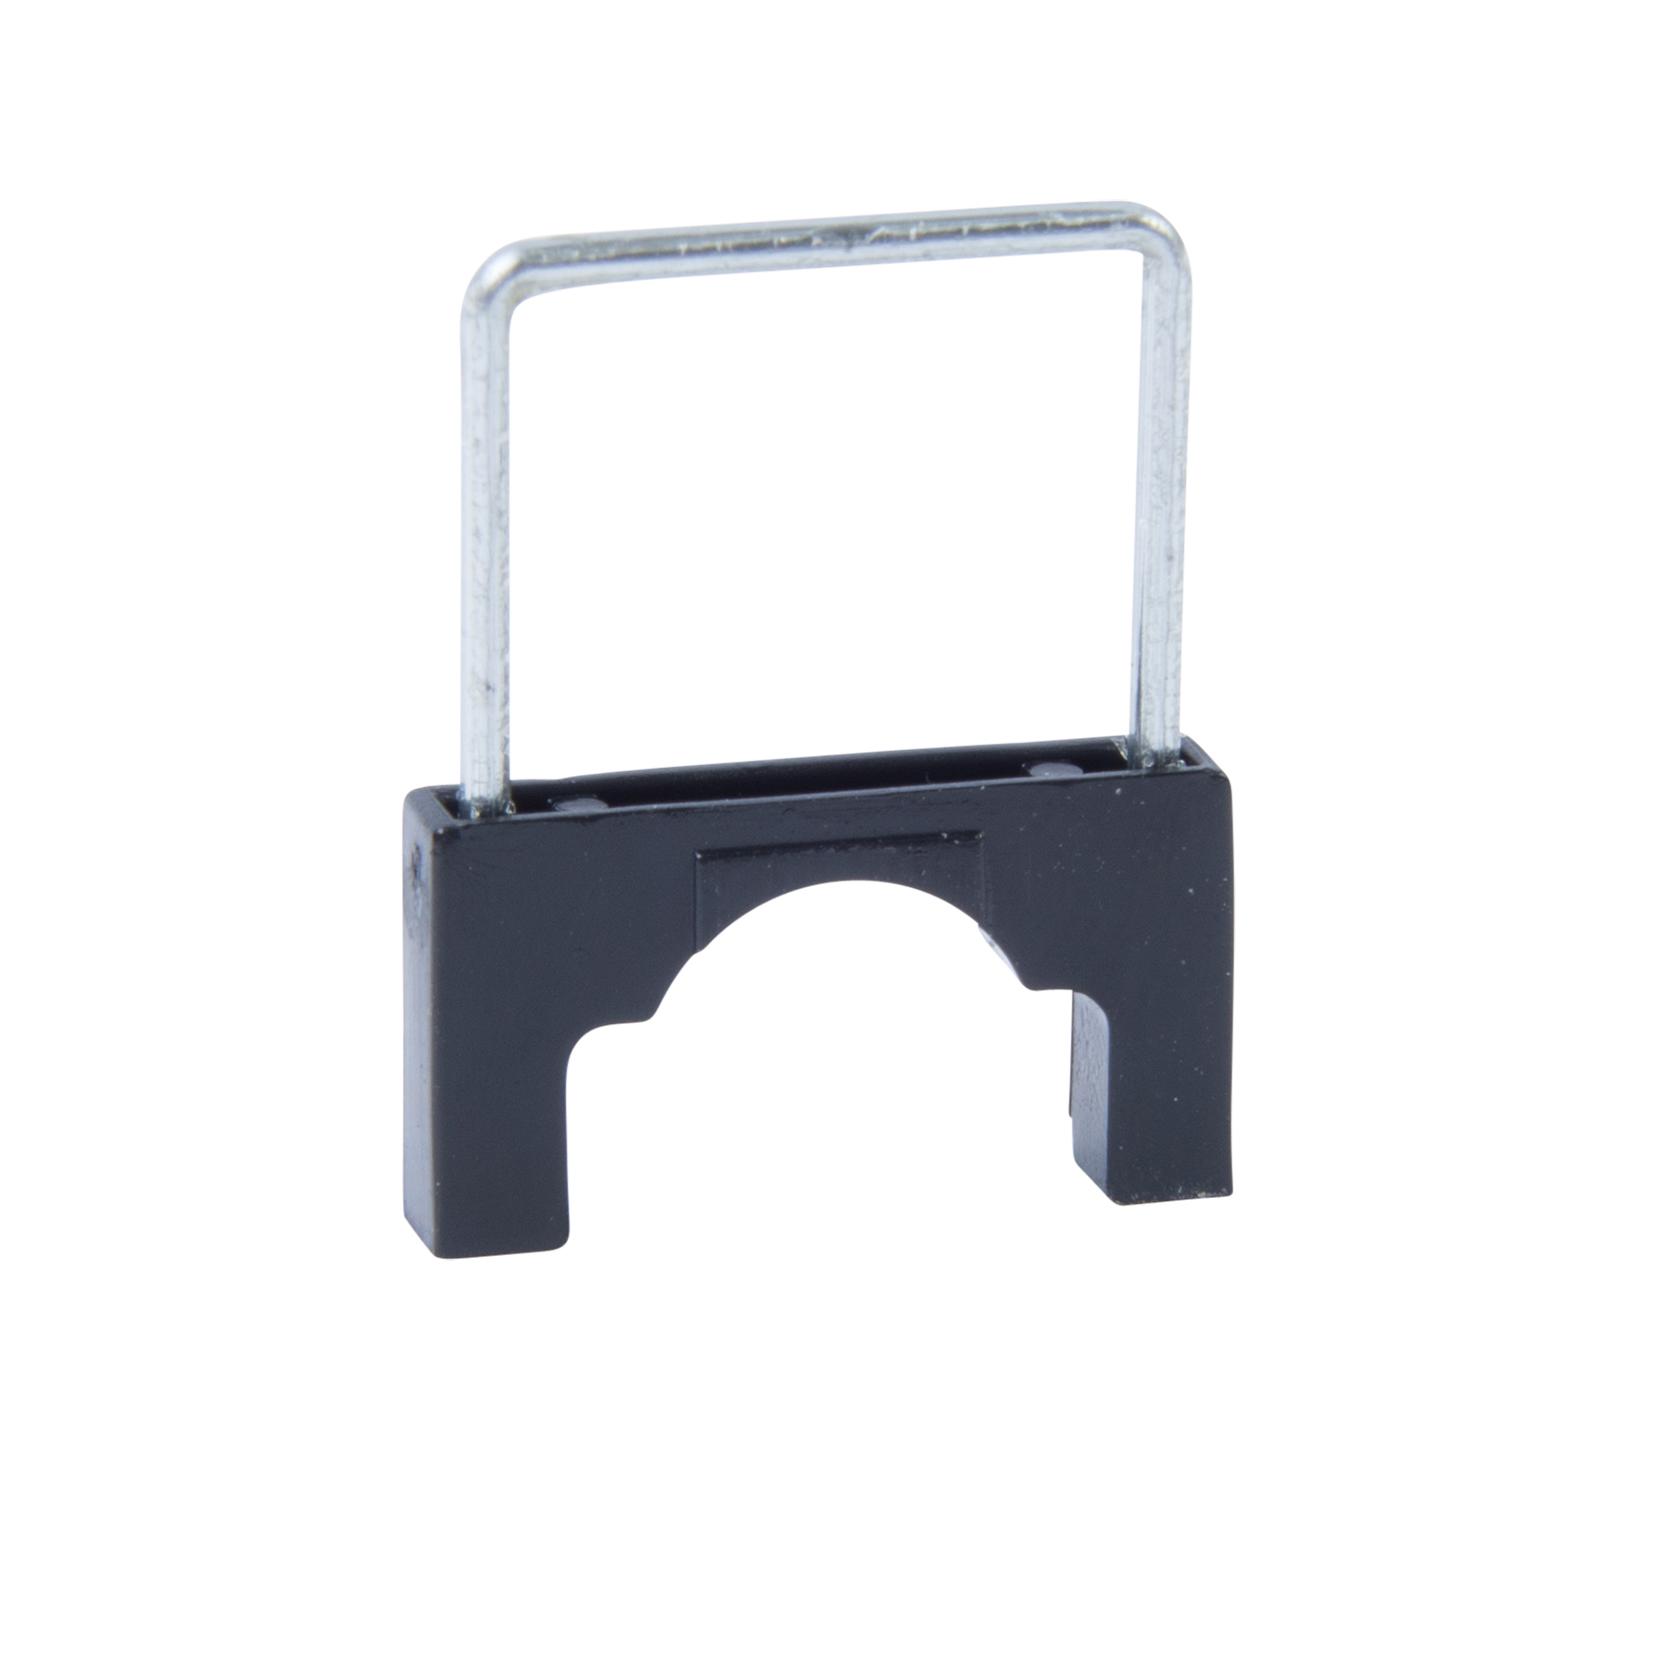 Picture of GB MPS-2125 Cable Staple, 1/2 in W Crown, 7/8 in L Leg, Metal/Plastic, 200, Pack